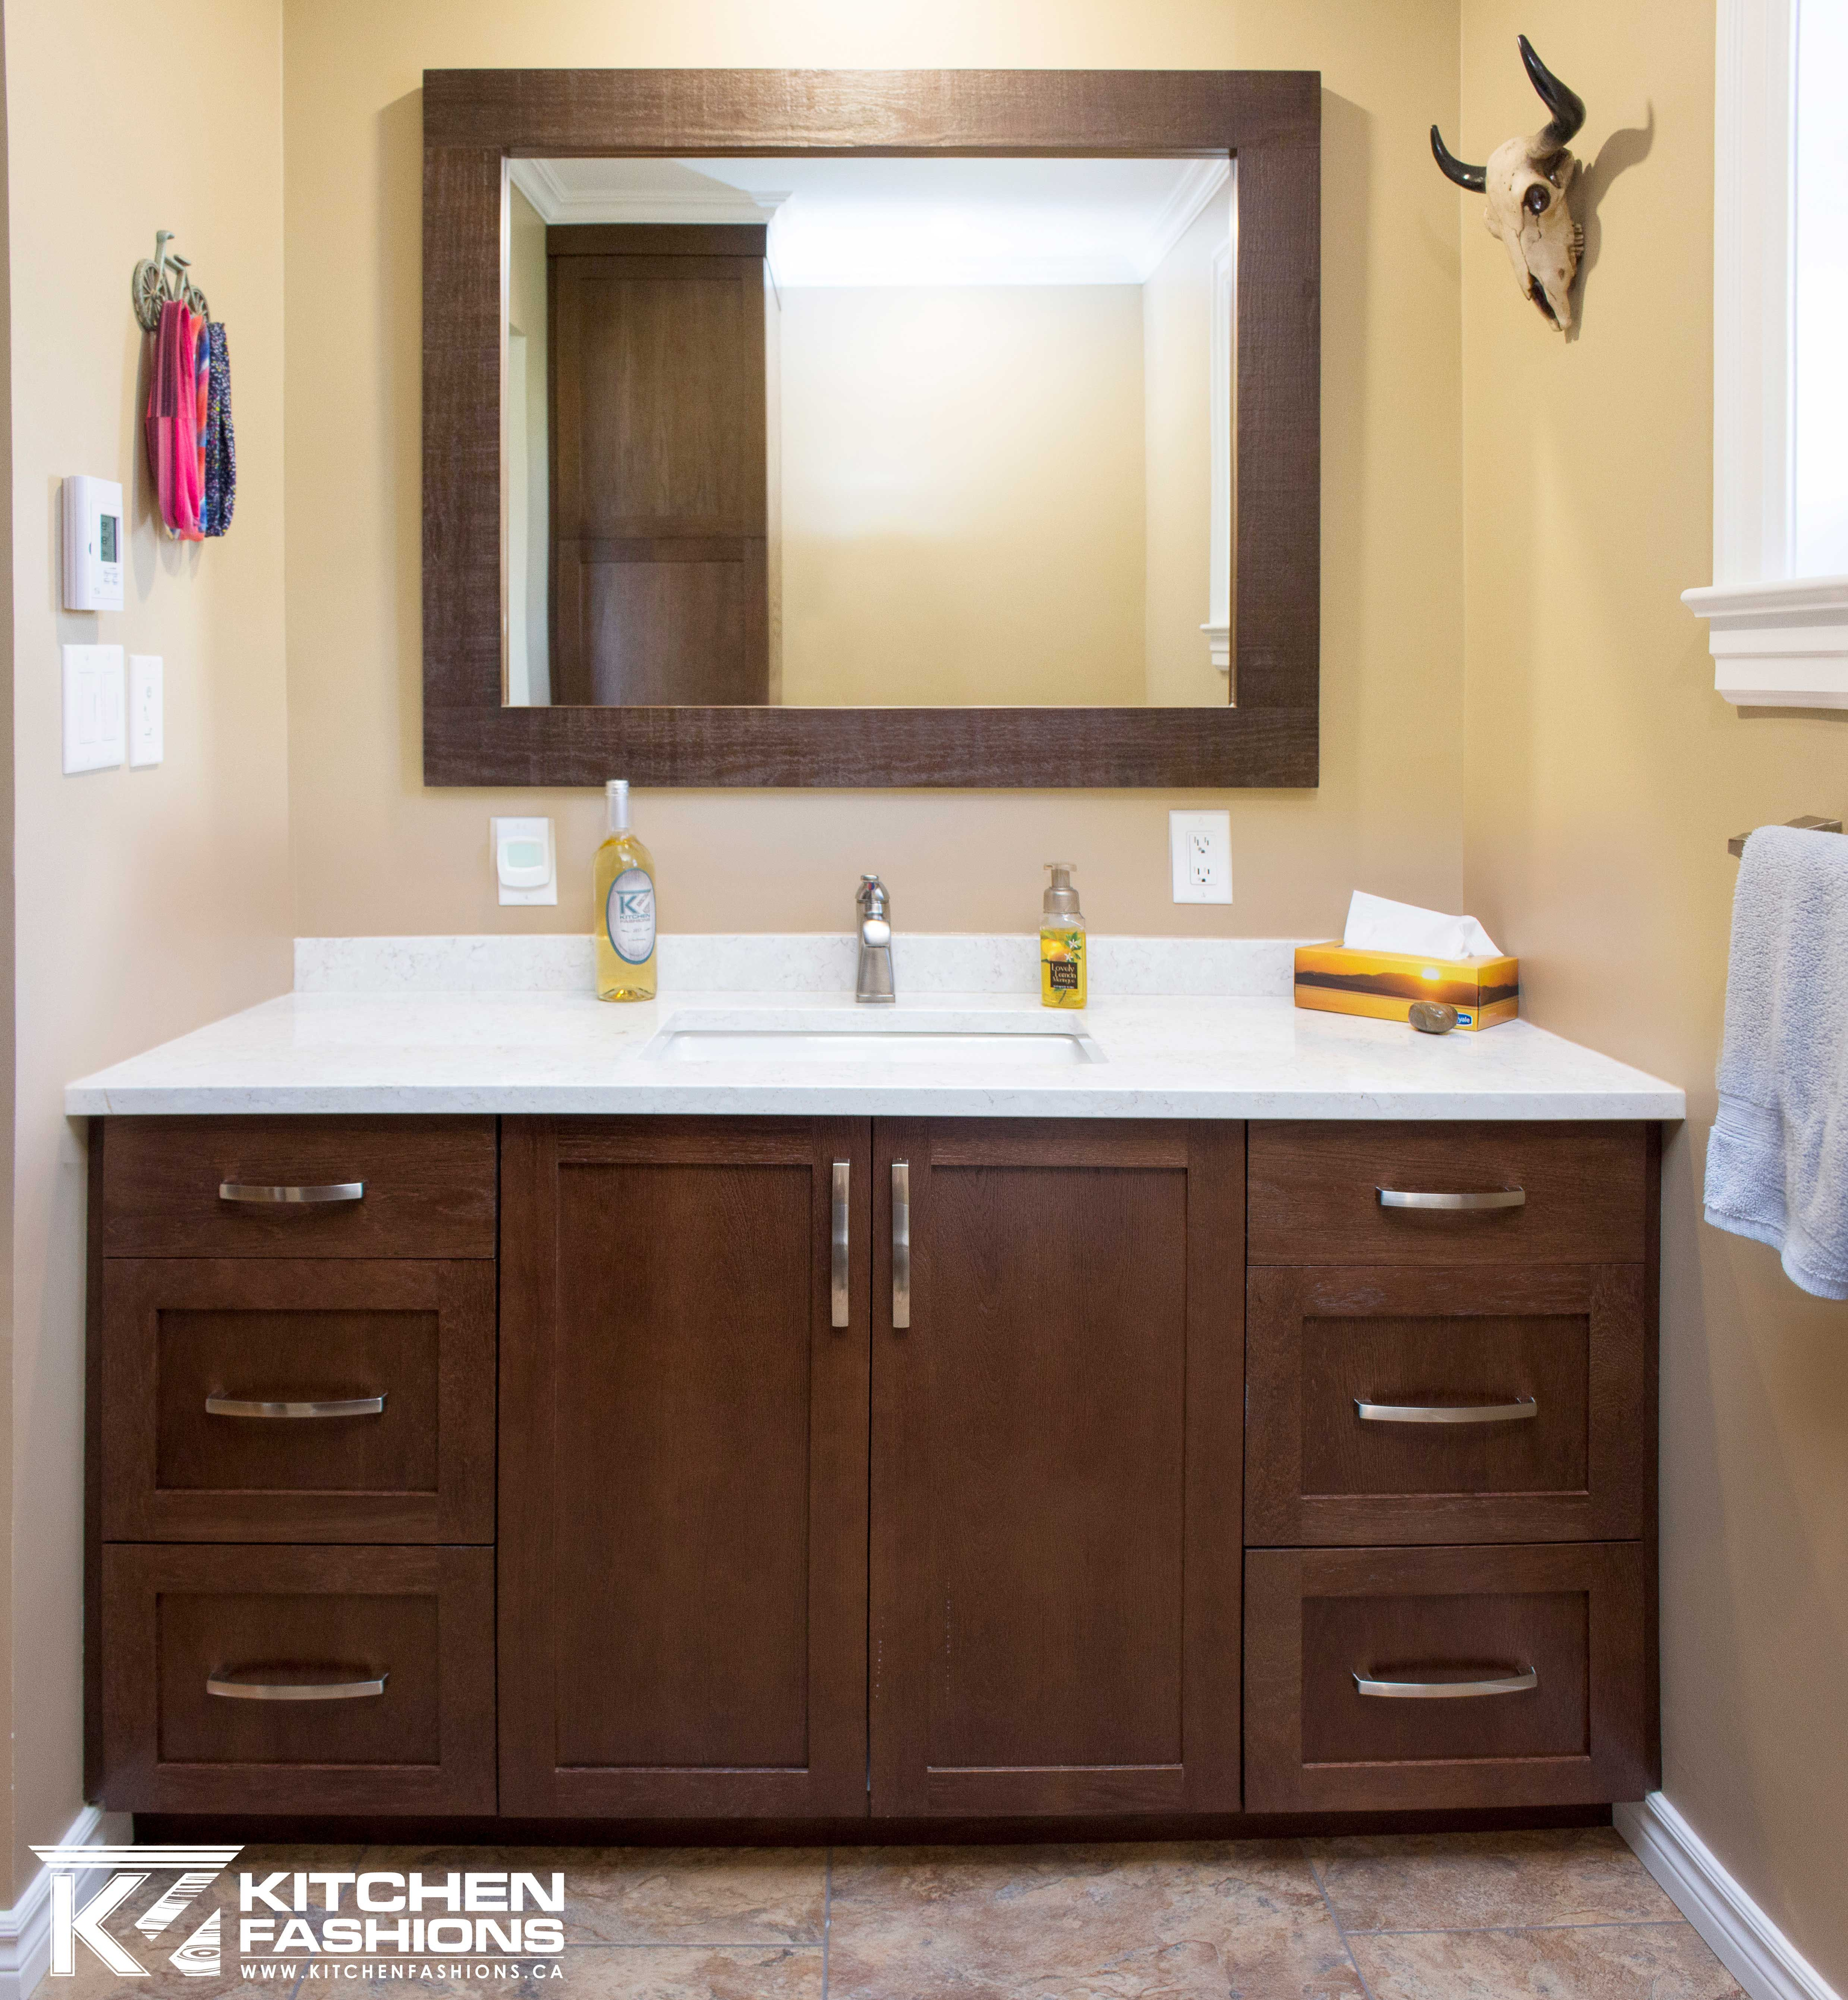 18+ White bathroom cabinets with brown countertops inspiration